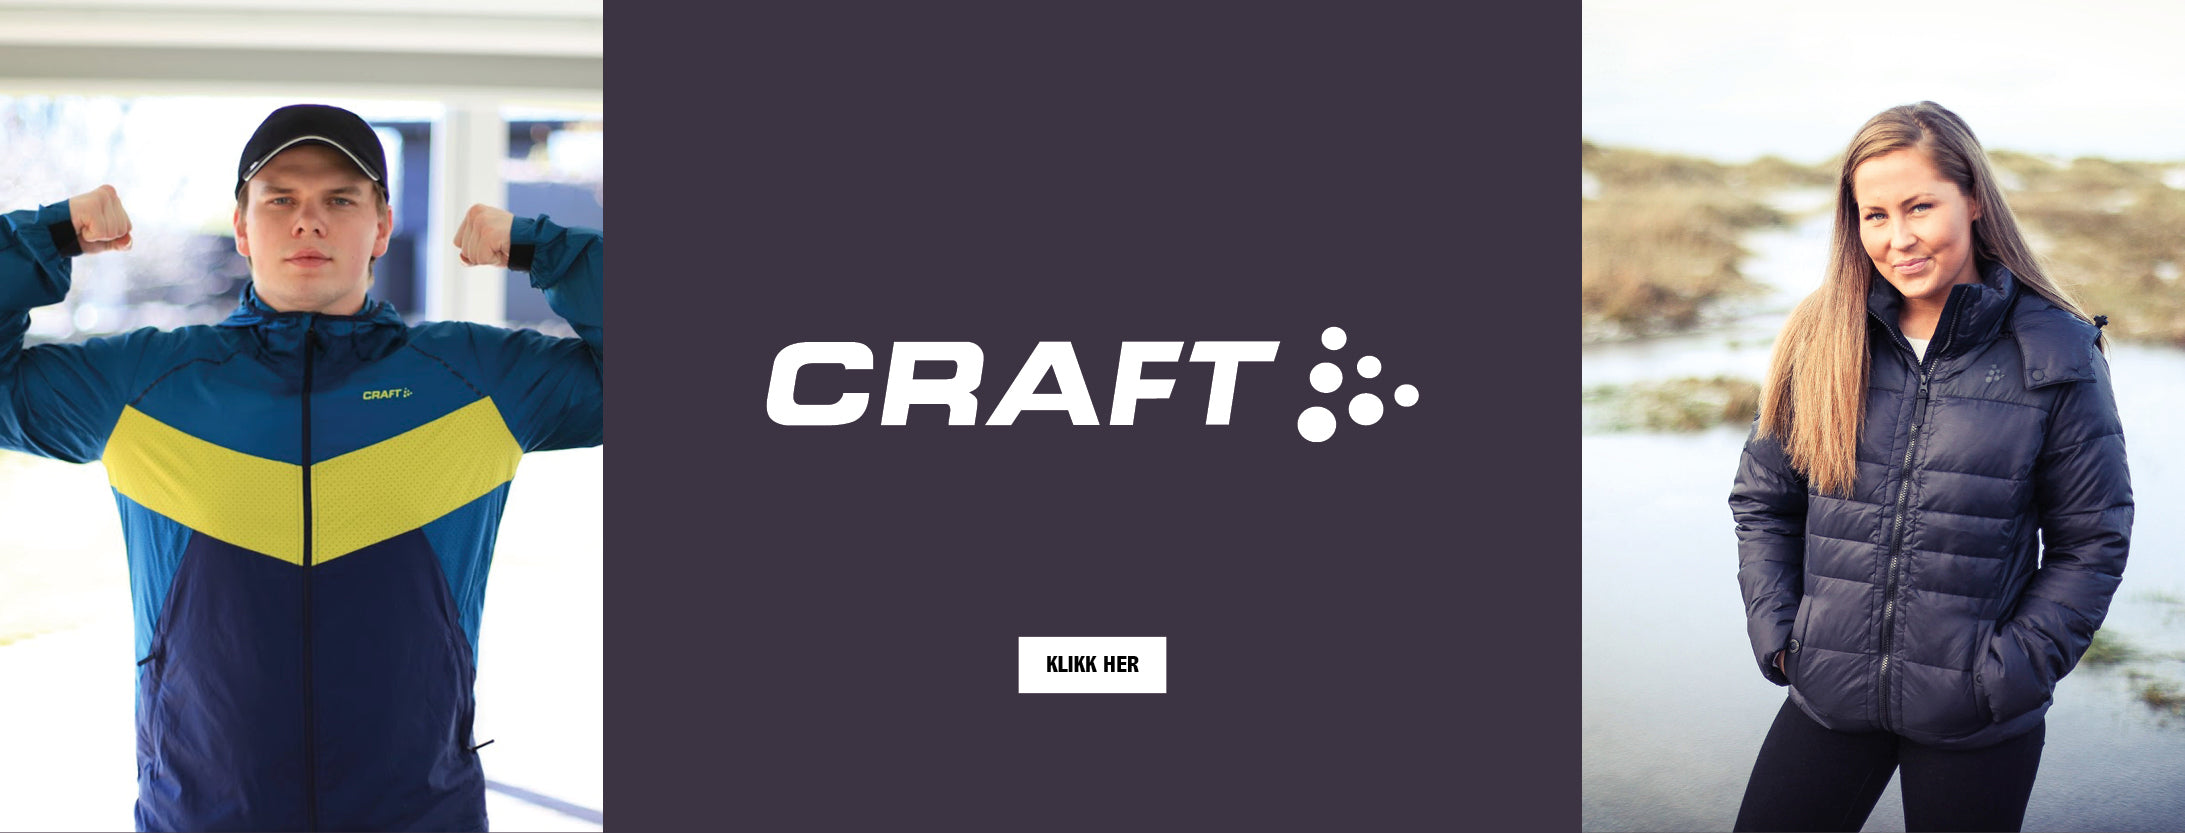 https://proffsport.no/collections/craft-1?=&page=1